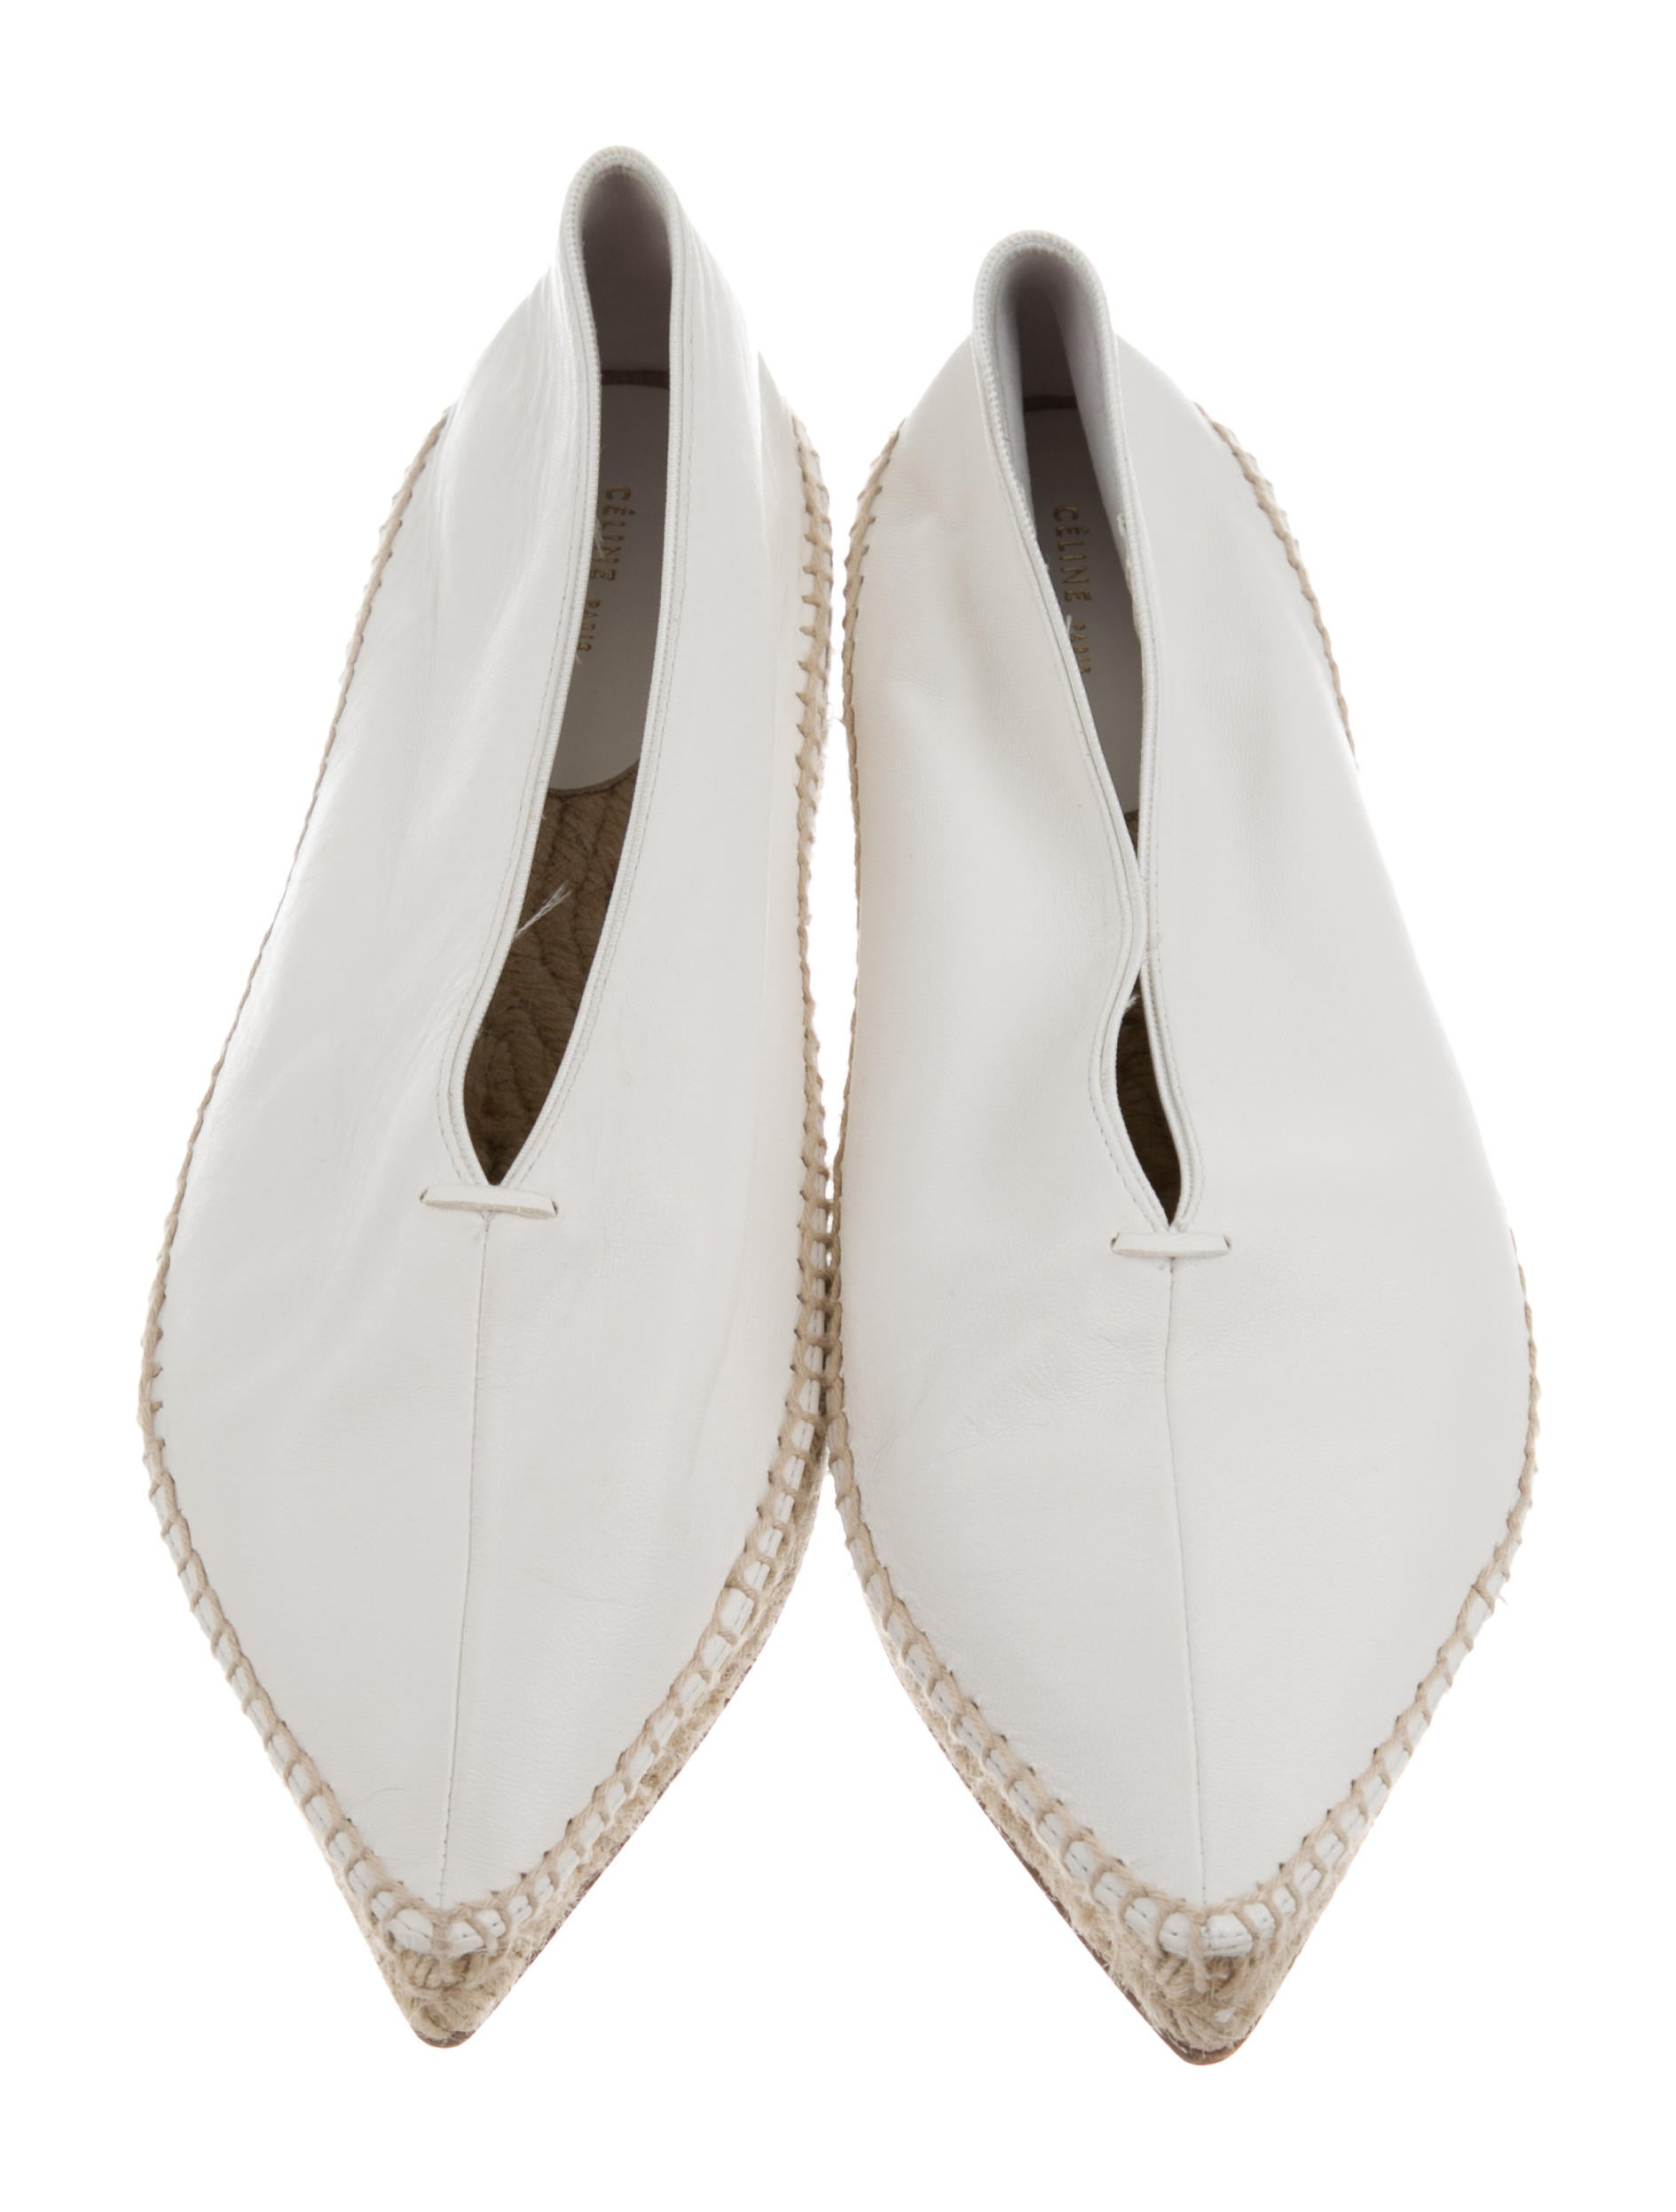 Céline 2017 Babouche Leather Espadrilles w/ Tags cheap outlet online cheap price free shipping pre order I3xUYtYjK